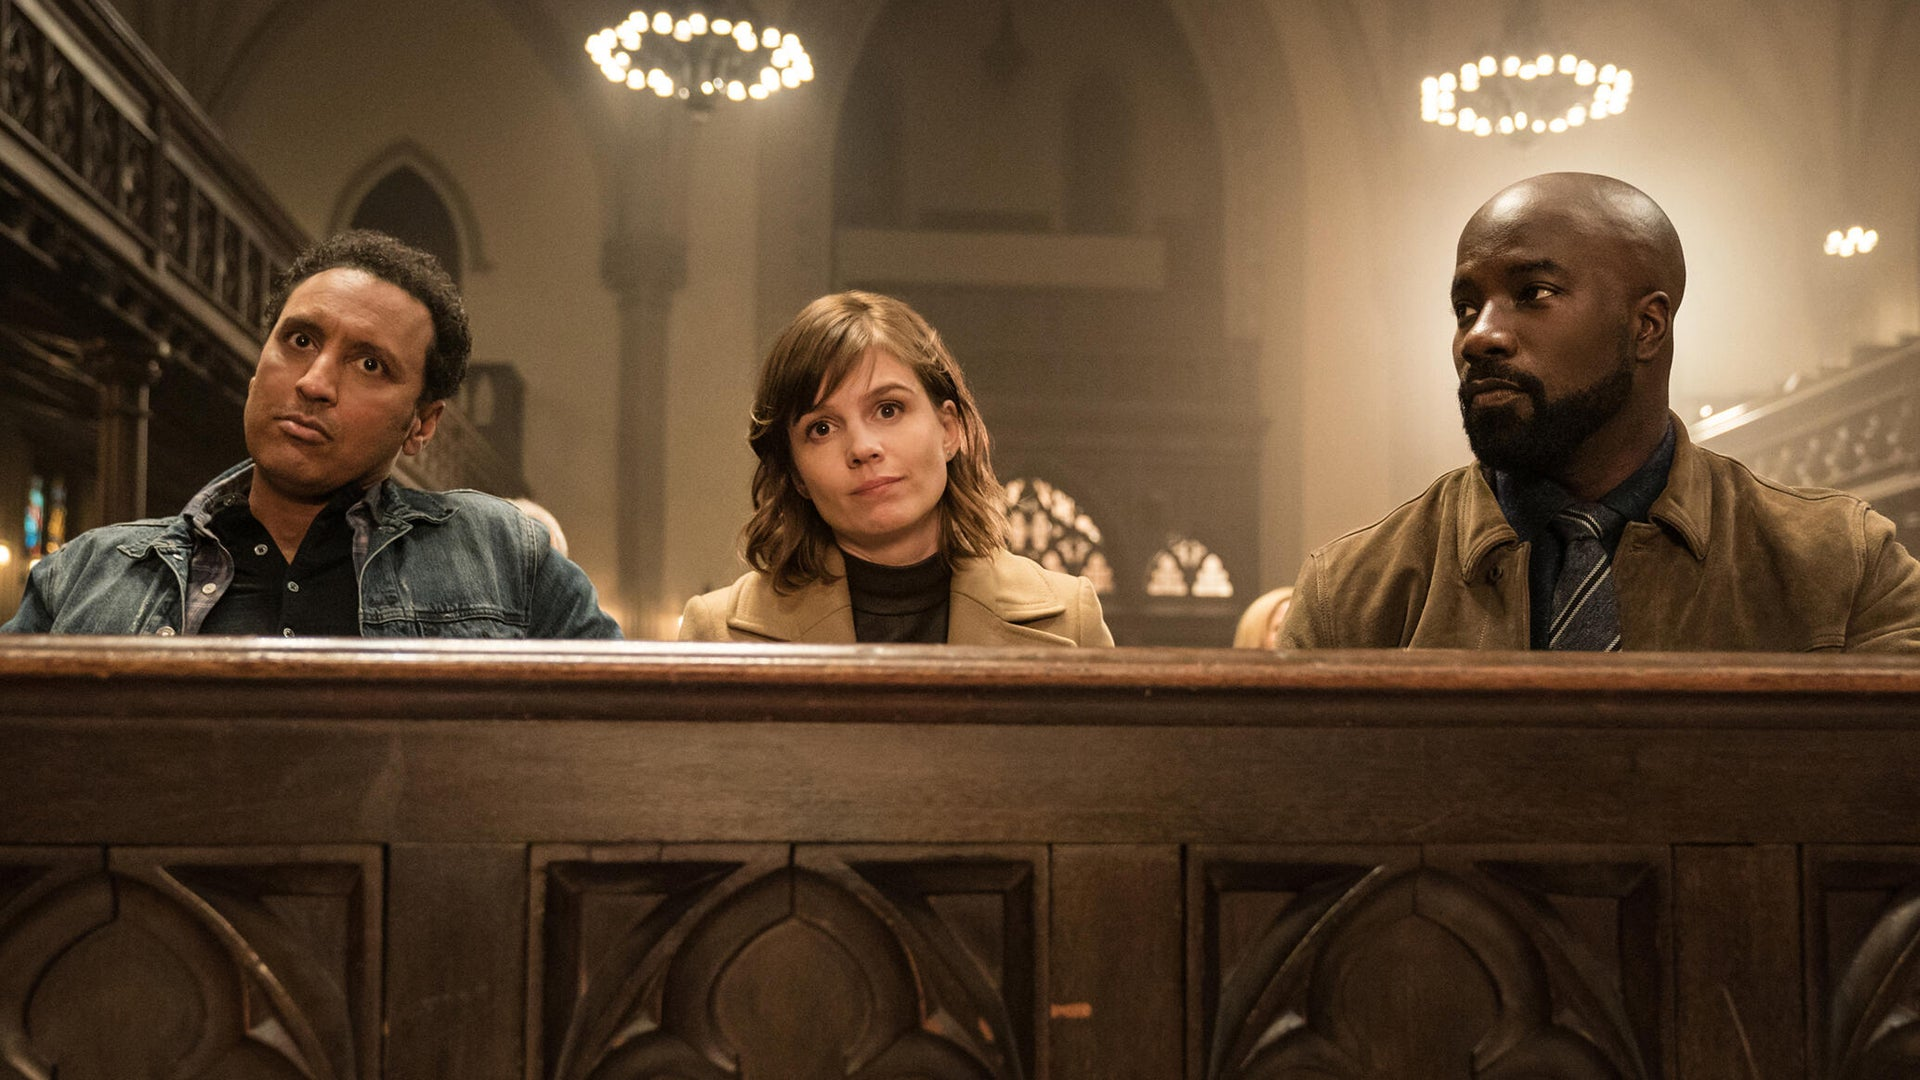 Aasif Mandvi, Katja Herbers, and Mike Colter, Evil